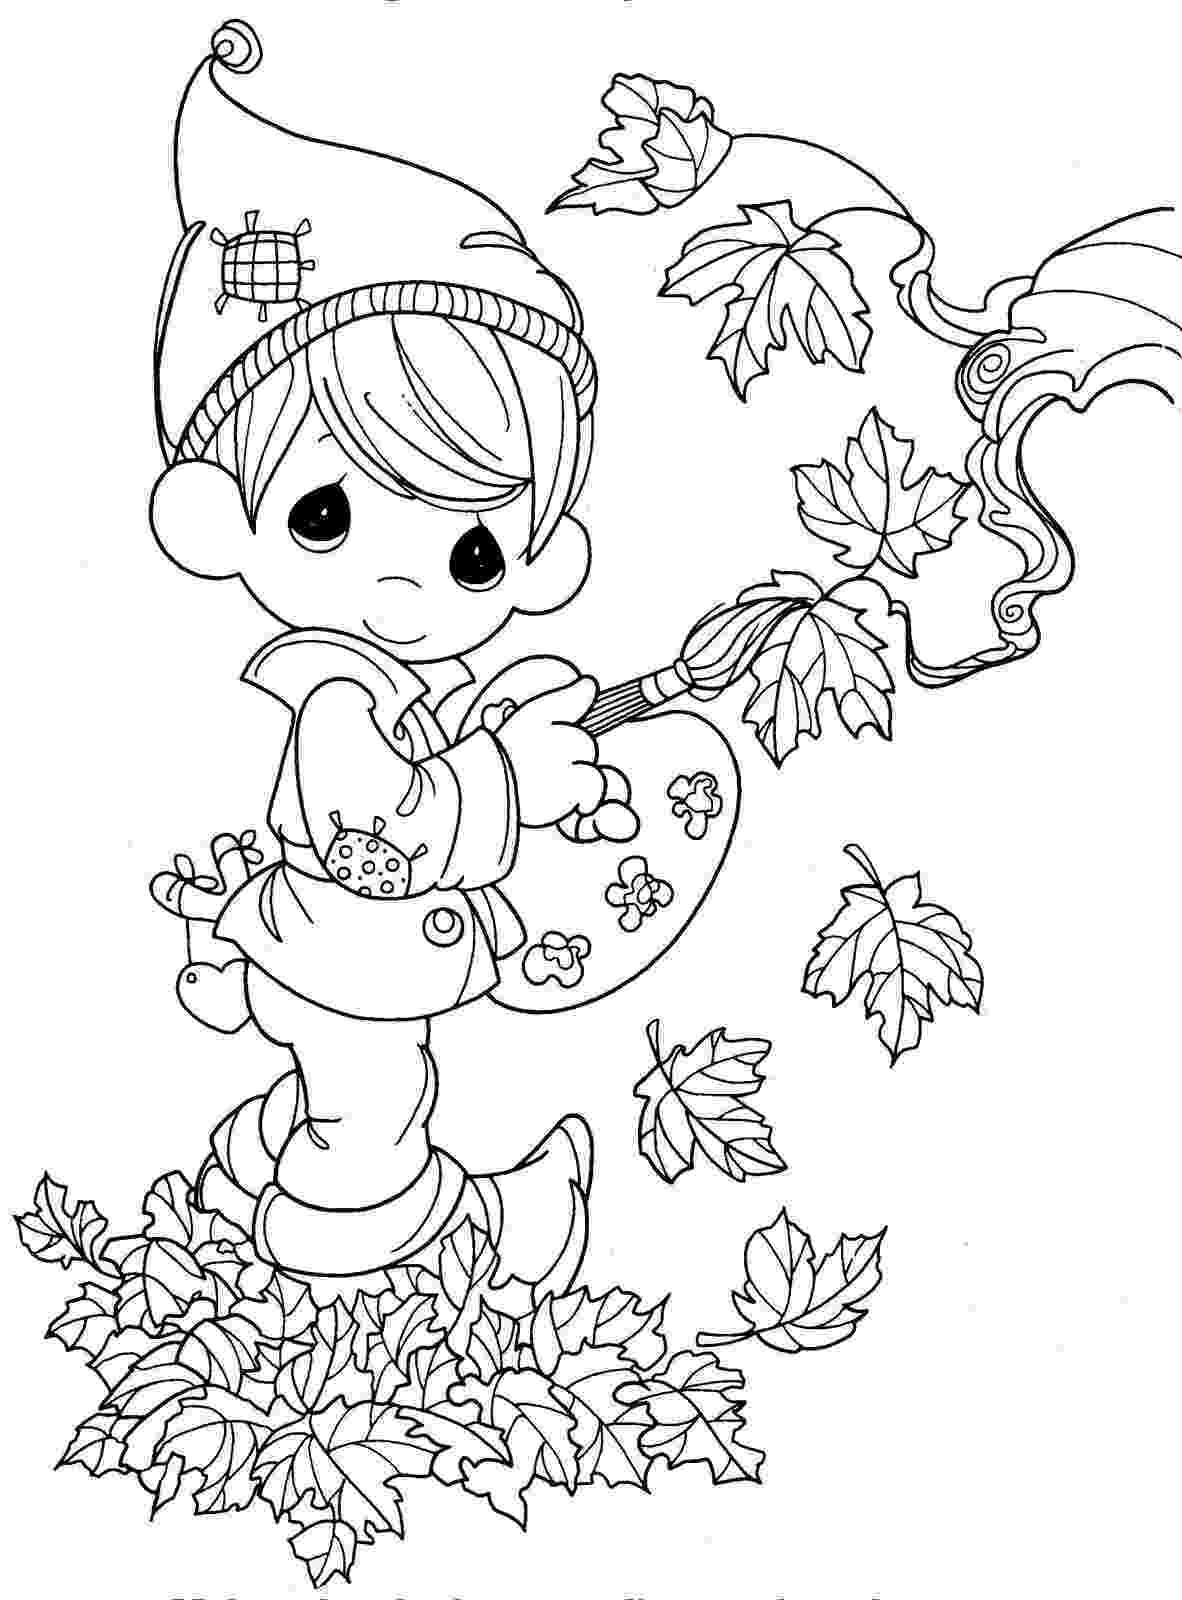 free coloring pages for teenagers free printable monster coloring pages for kids cool2bkids teenagers pages for coloring free